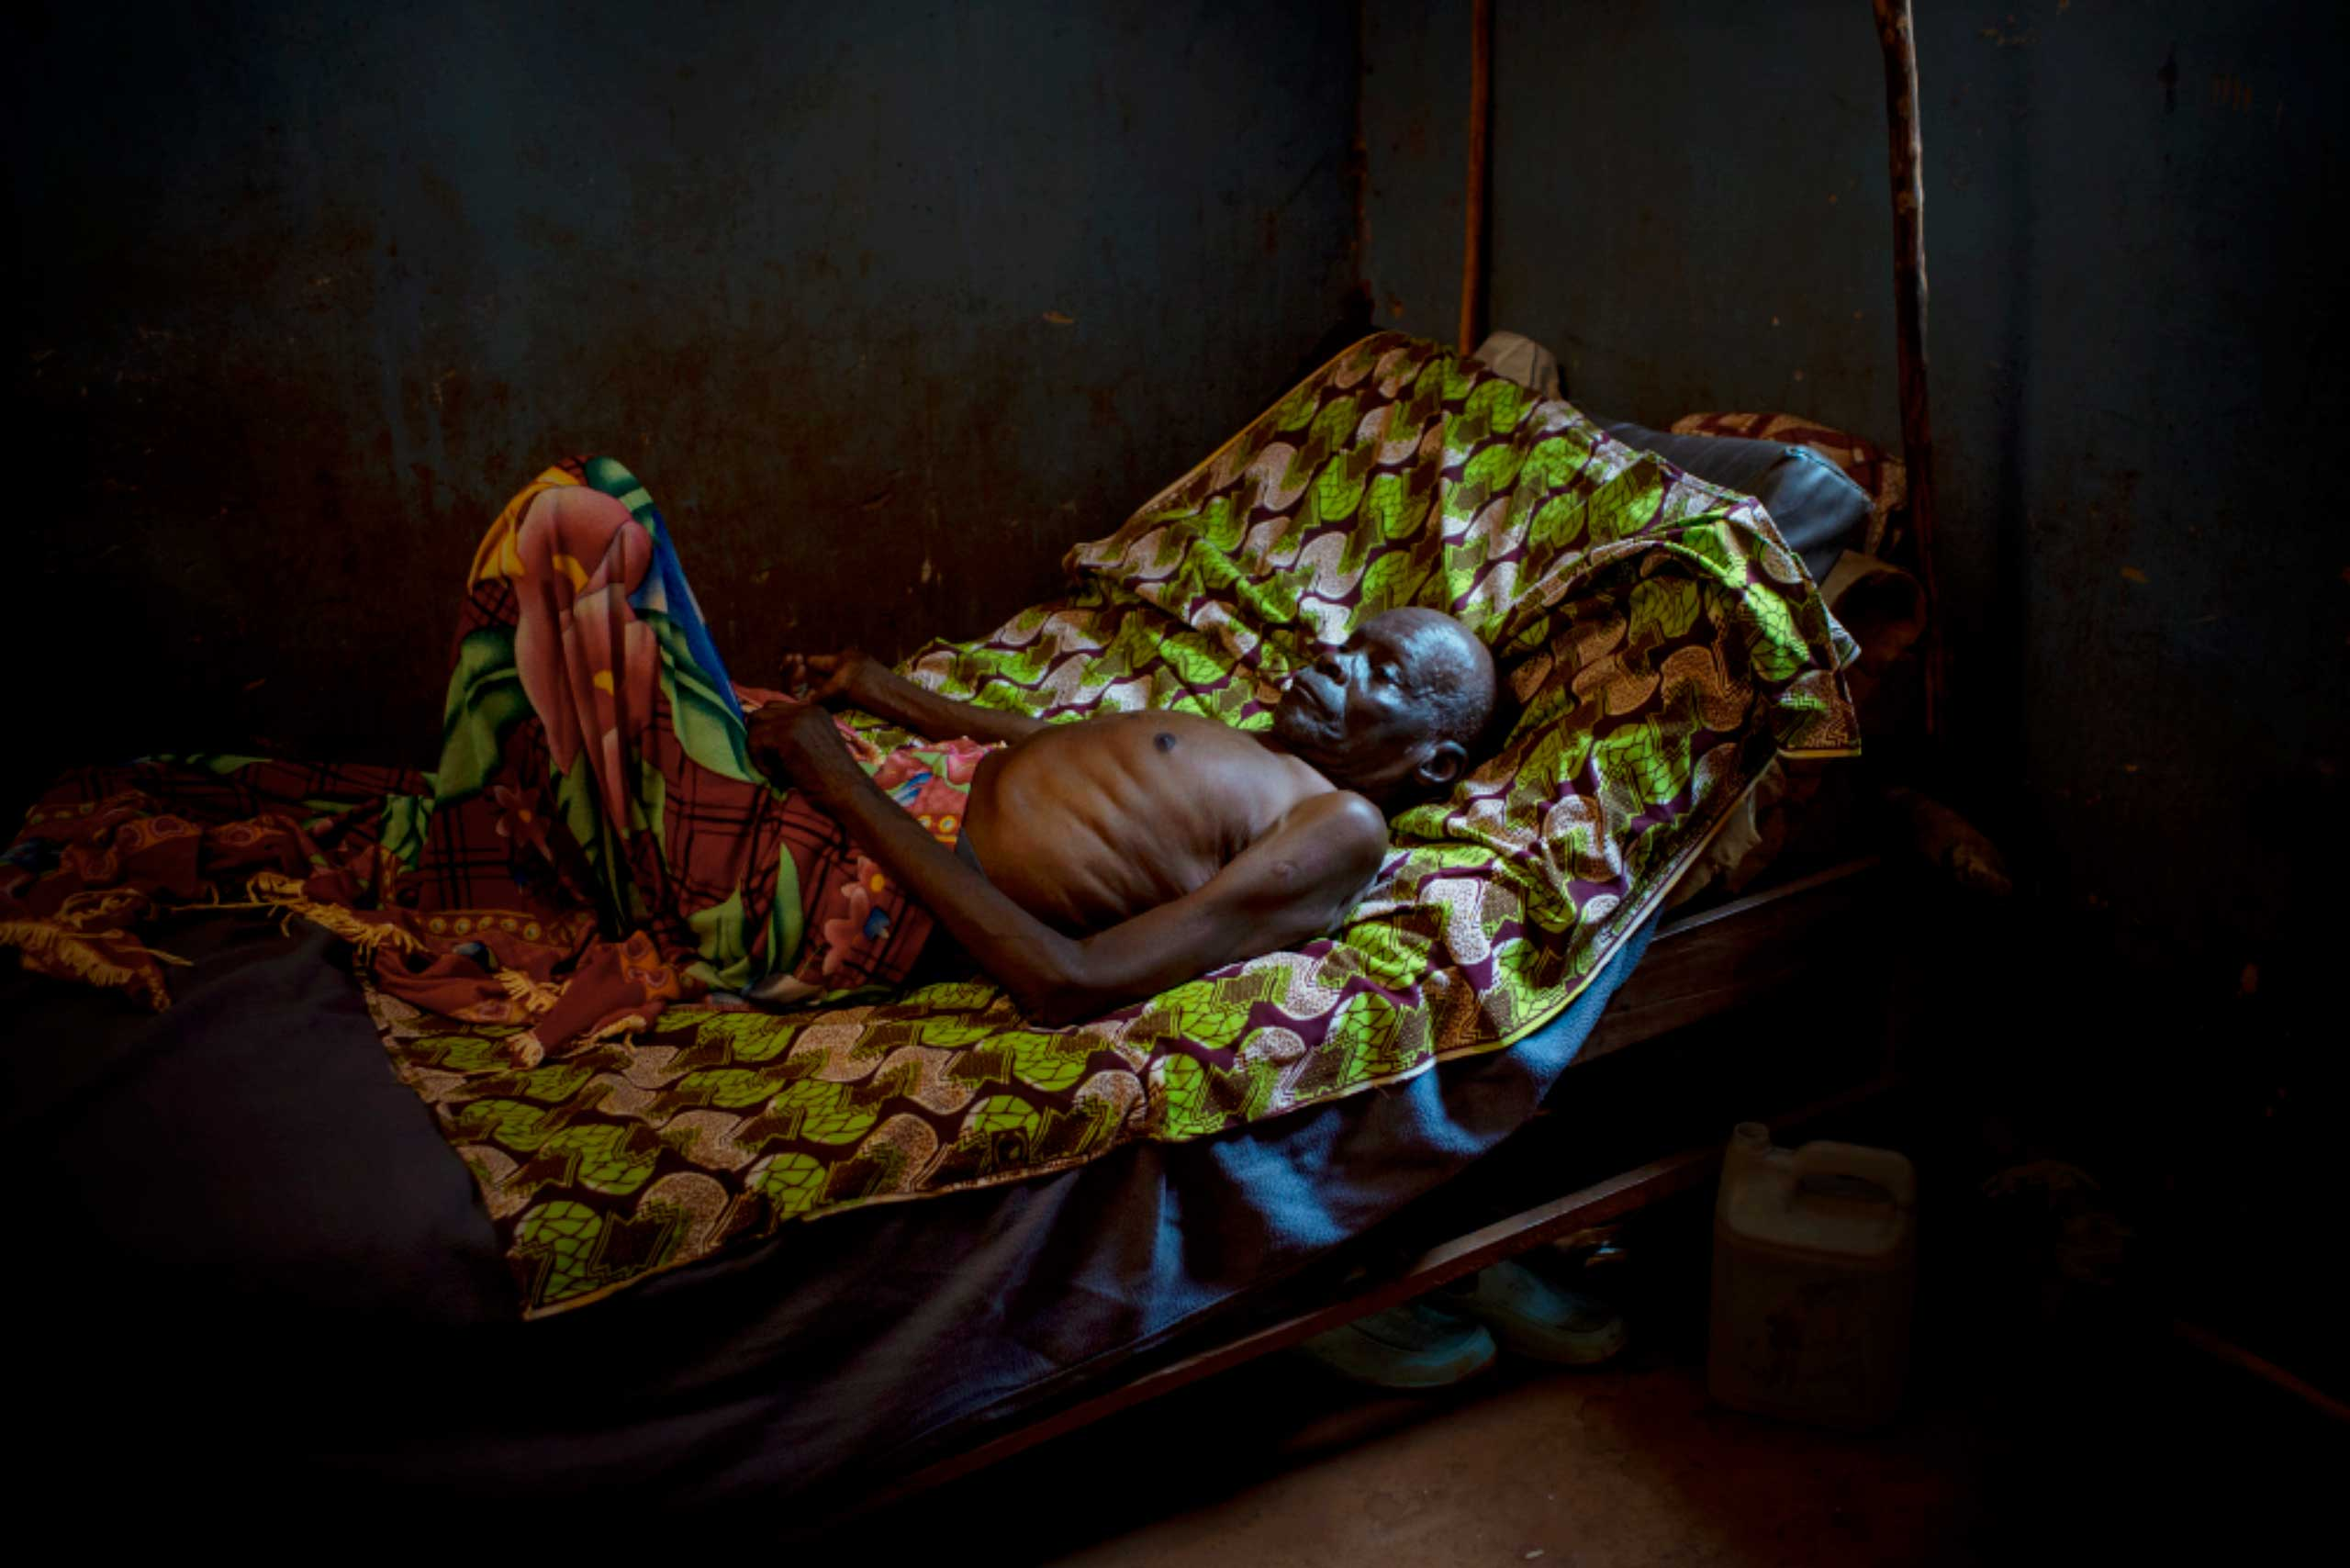 Daniel Guimiyessi was treated by a team of Medecins Sans Frontieres doctors for tuberculosis at a hospital in Zemio, Central African Republic, before being dispatched to a clinic ran by protestant missionaries. He developed pneumonia—the focus of his current treatment.